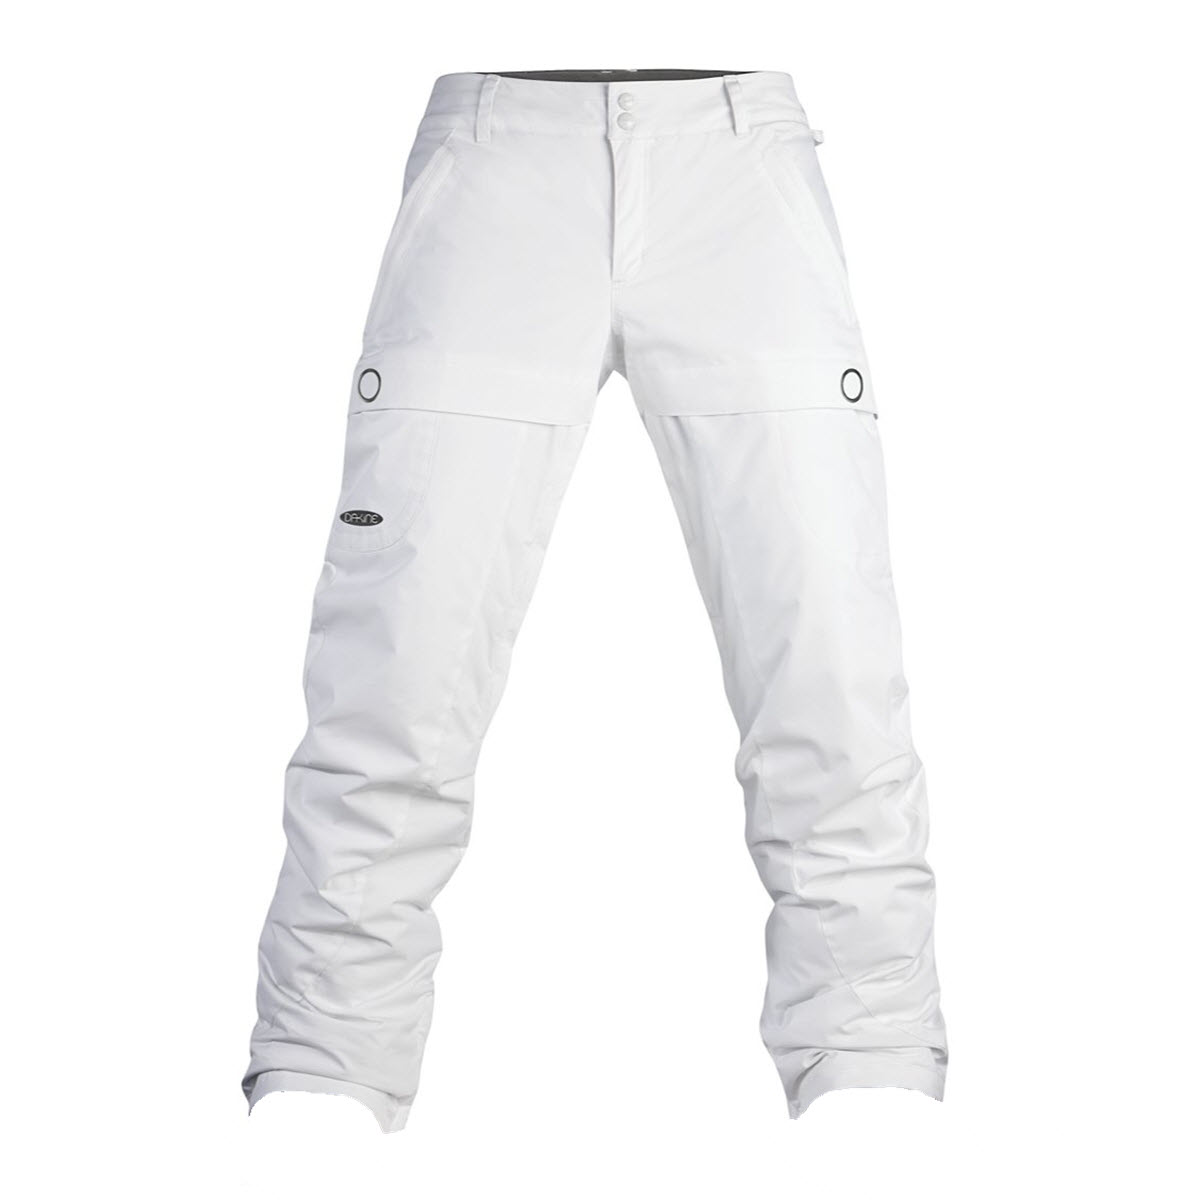 Dakine Womens Katerina Snowboard Pants 2014 White Medium